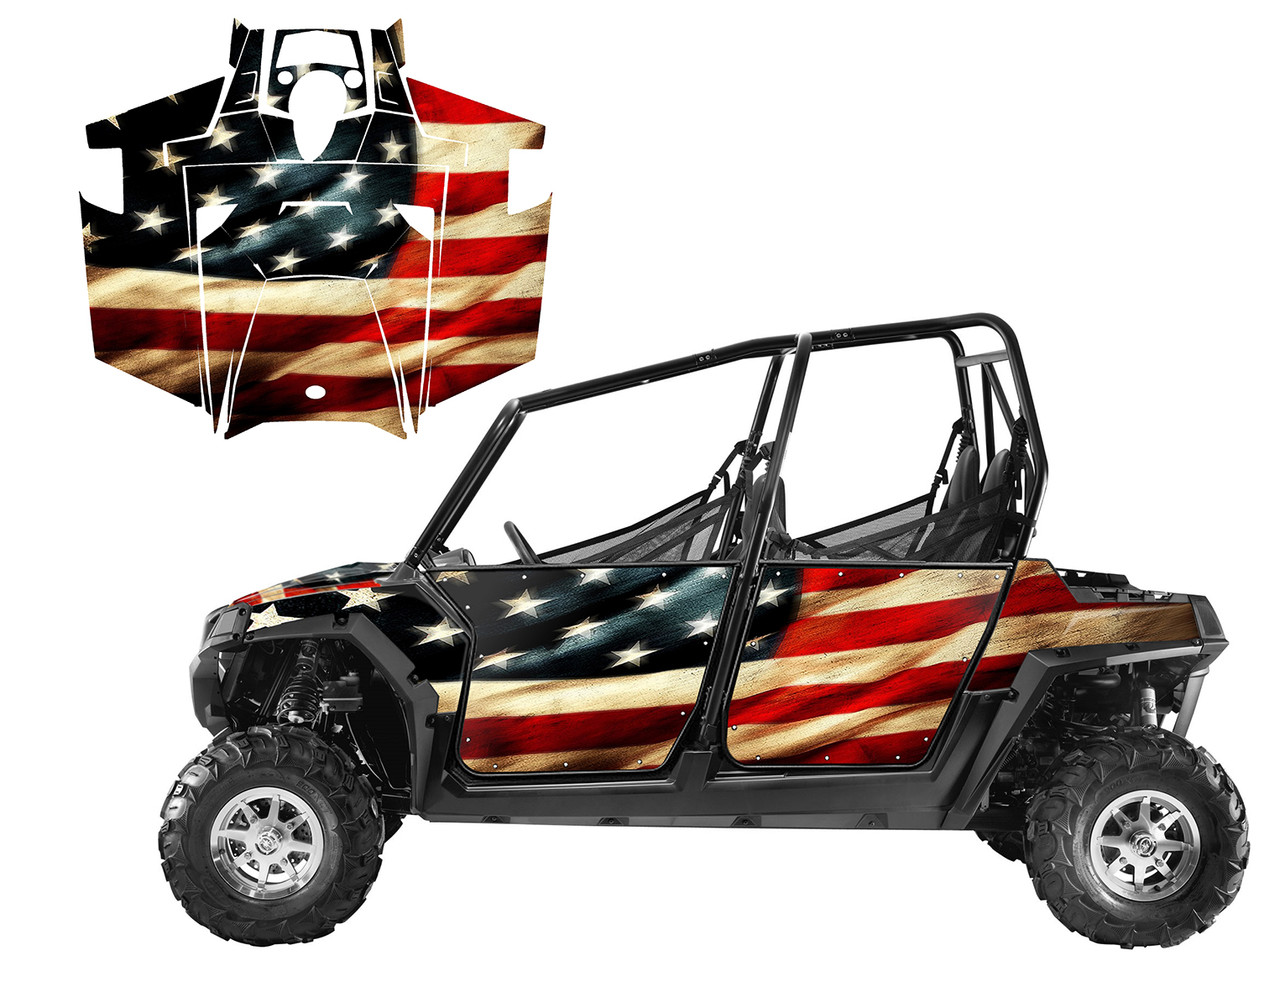 American Flag wrap for 2011-2014 RZR 800 4 seater